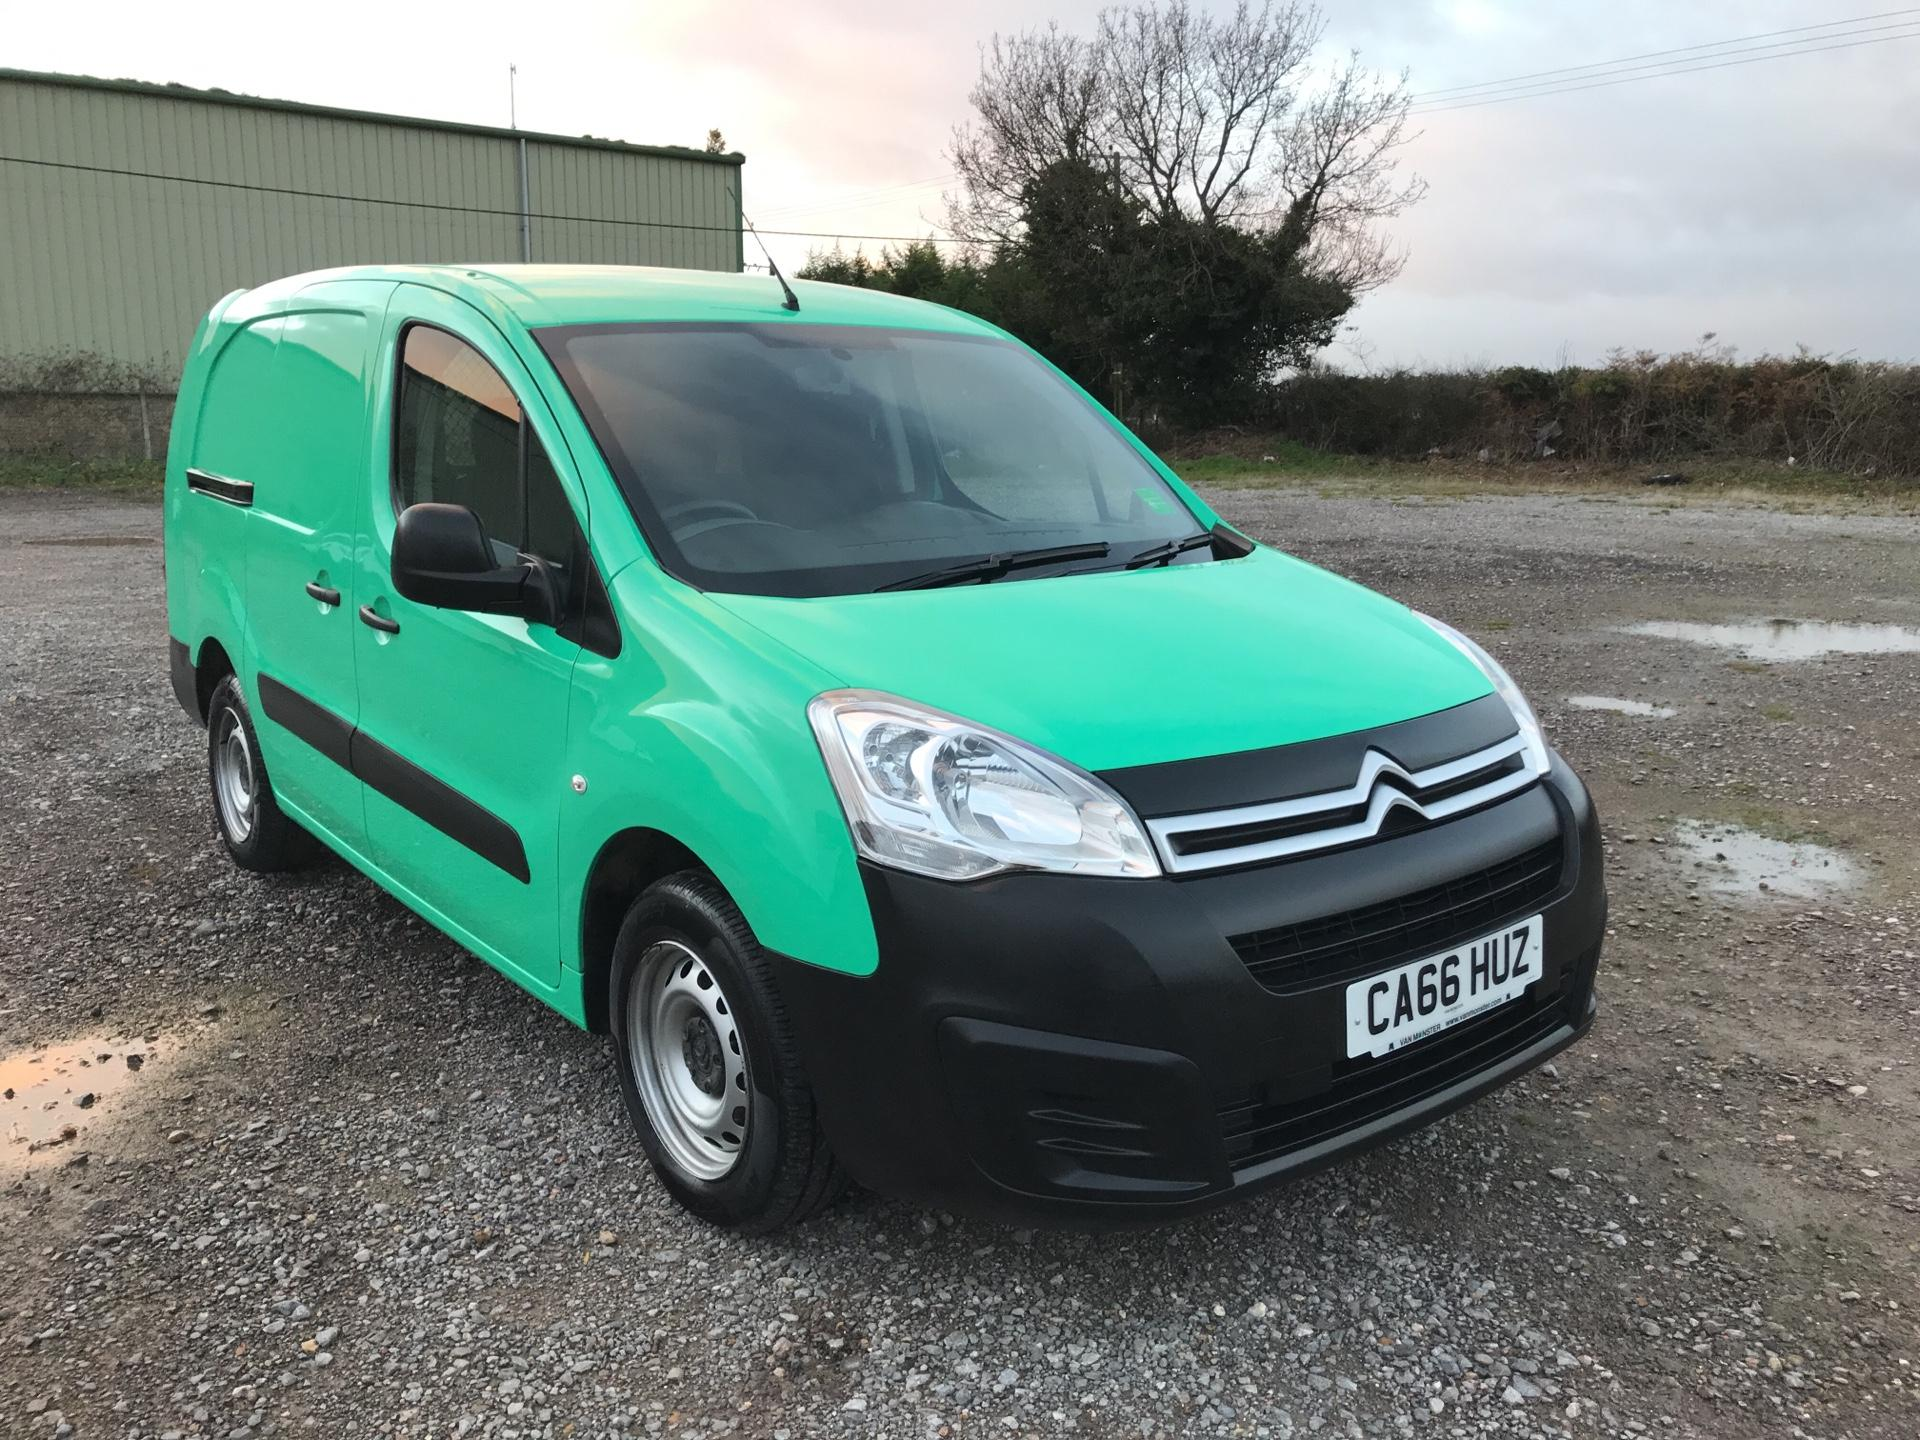 2017 Citroen Berlingo L2 DIESEL 1.6 BLUEHDI 750 LX 100PS EURO 6  (CA66HUZ)